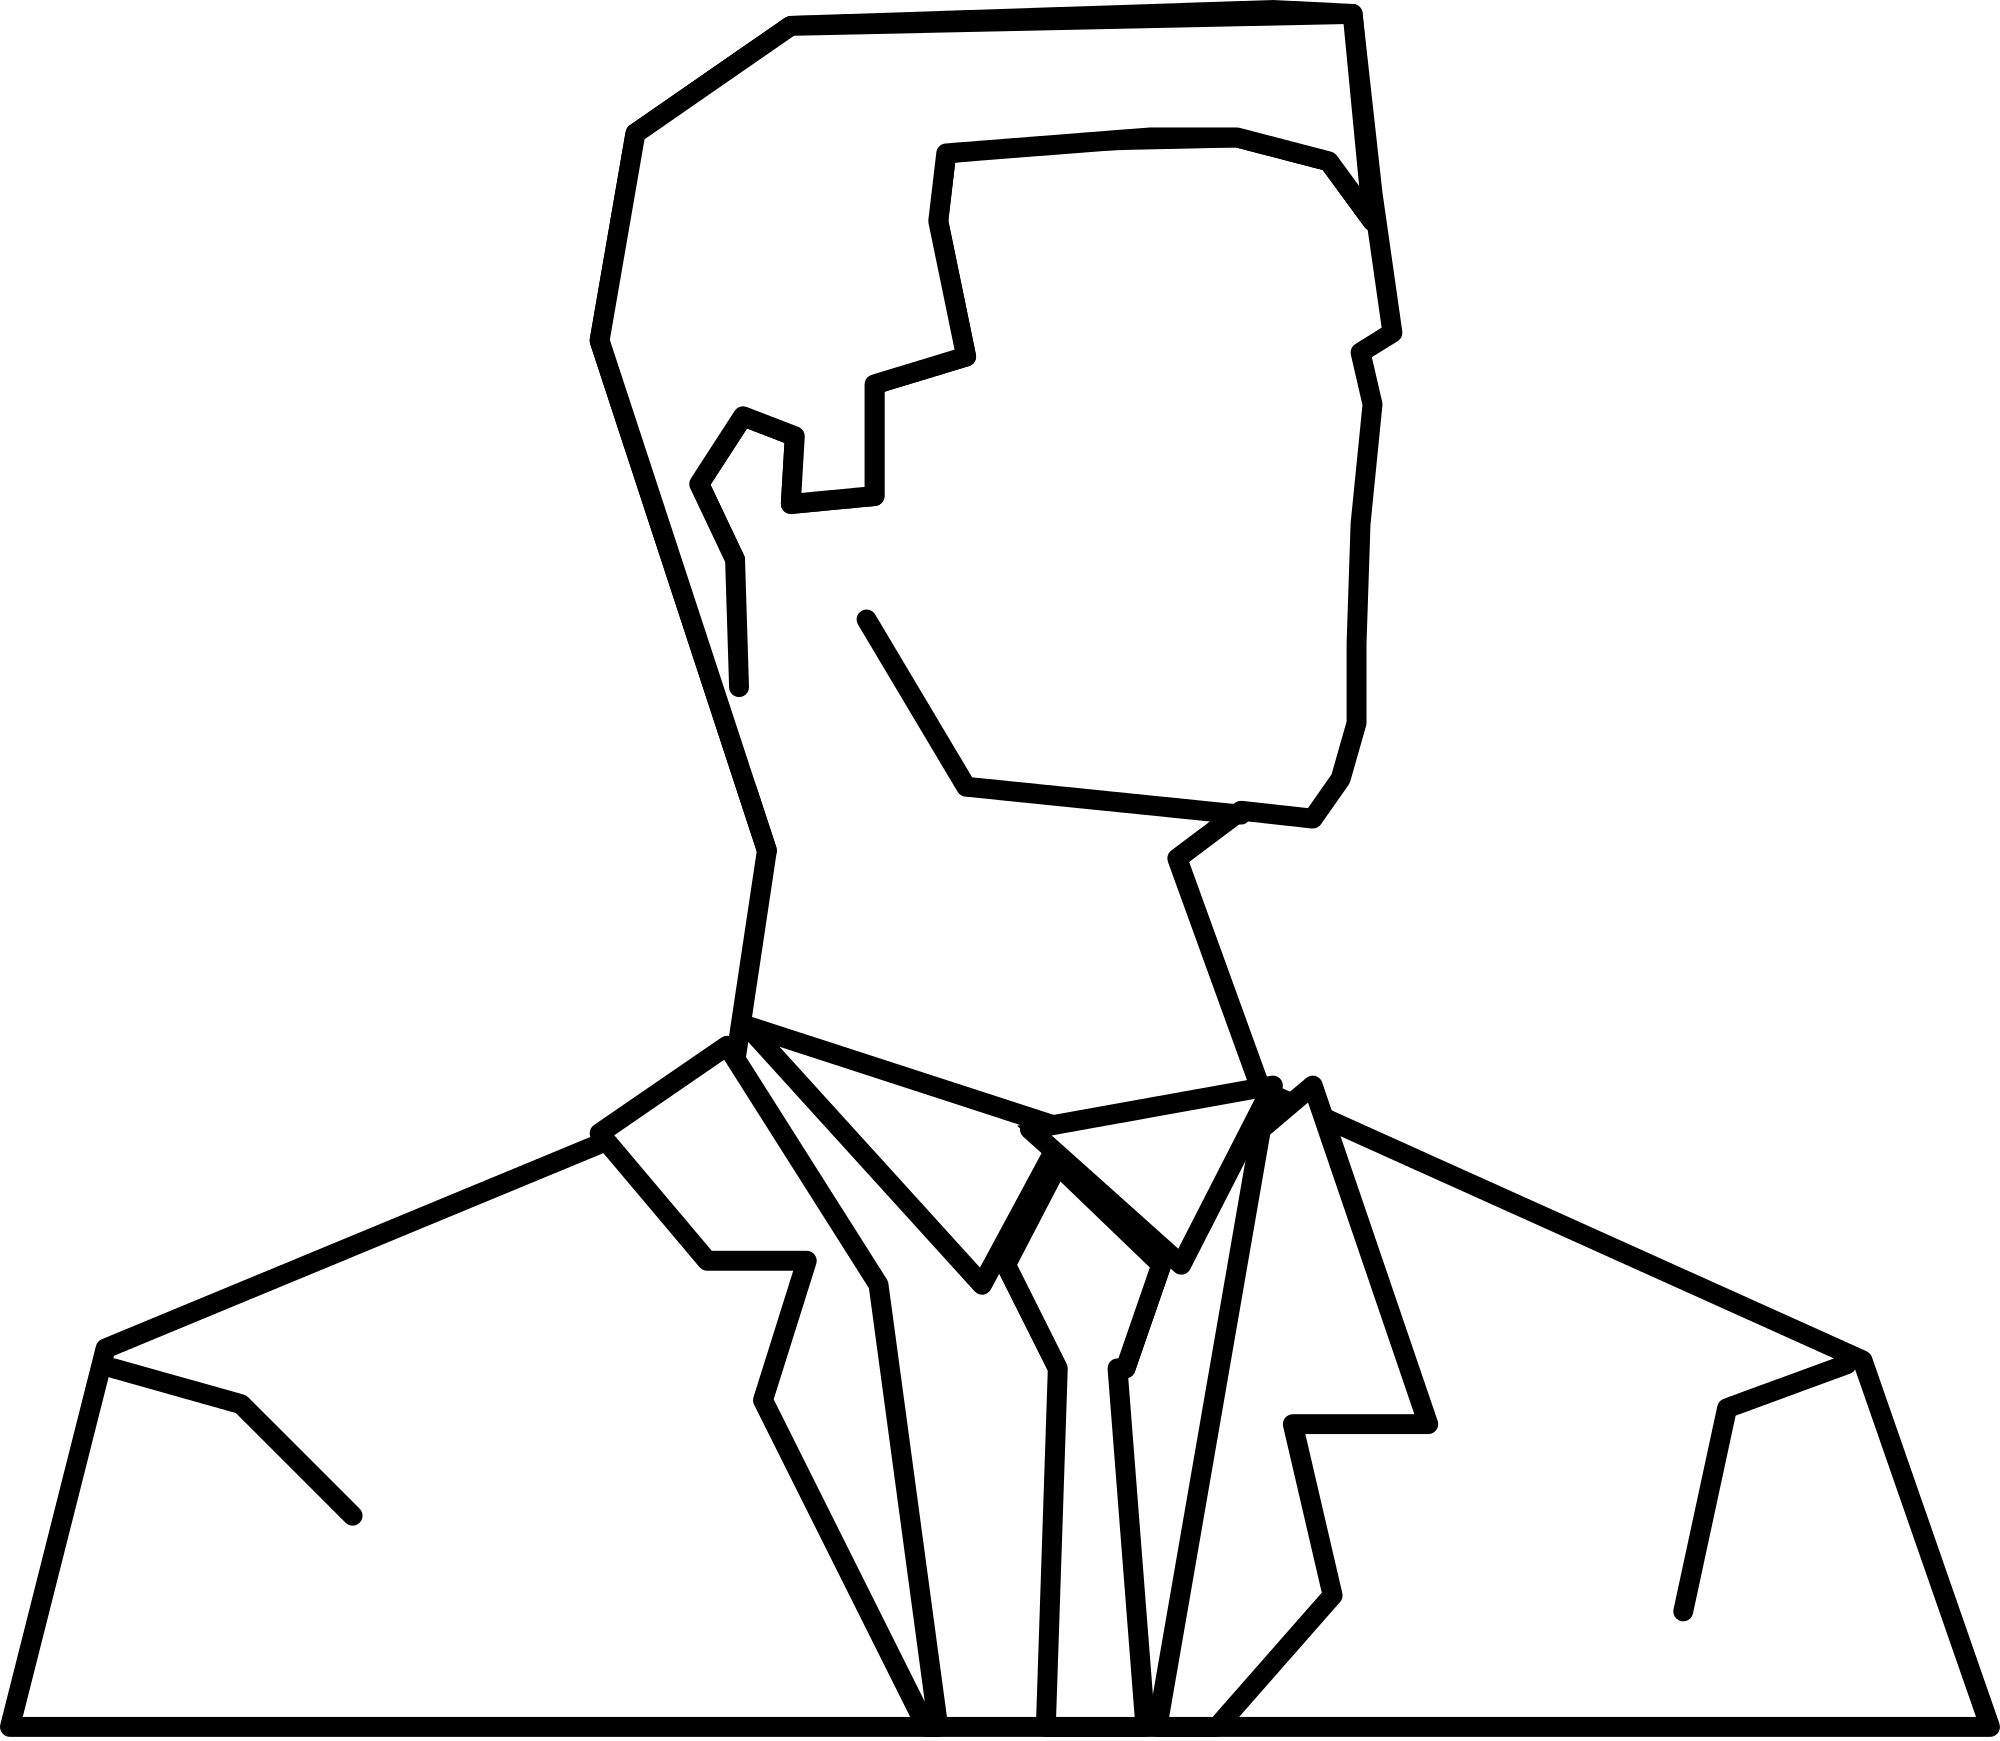 2000x1741 Filesilhouette Man Front Outline Bw.svg